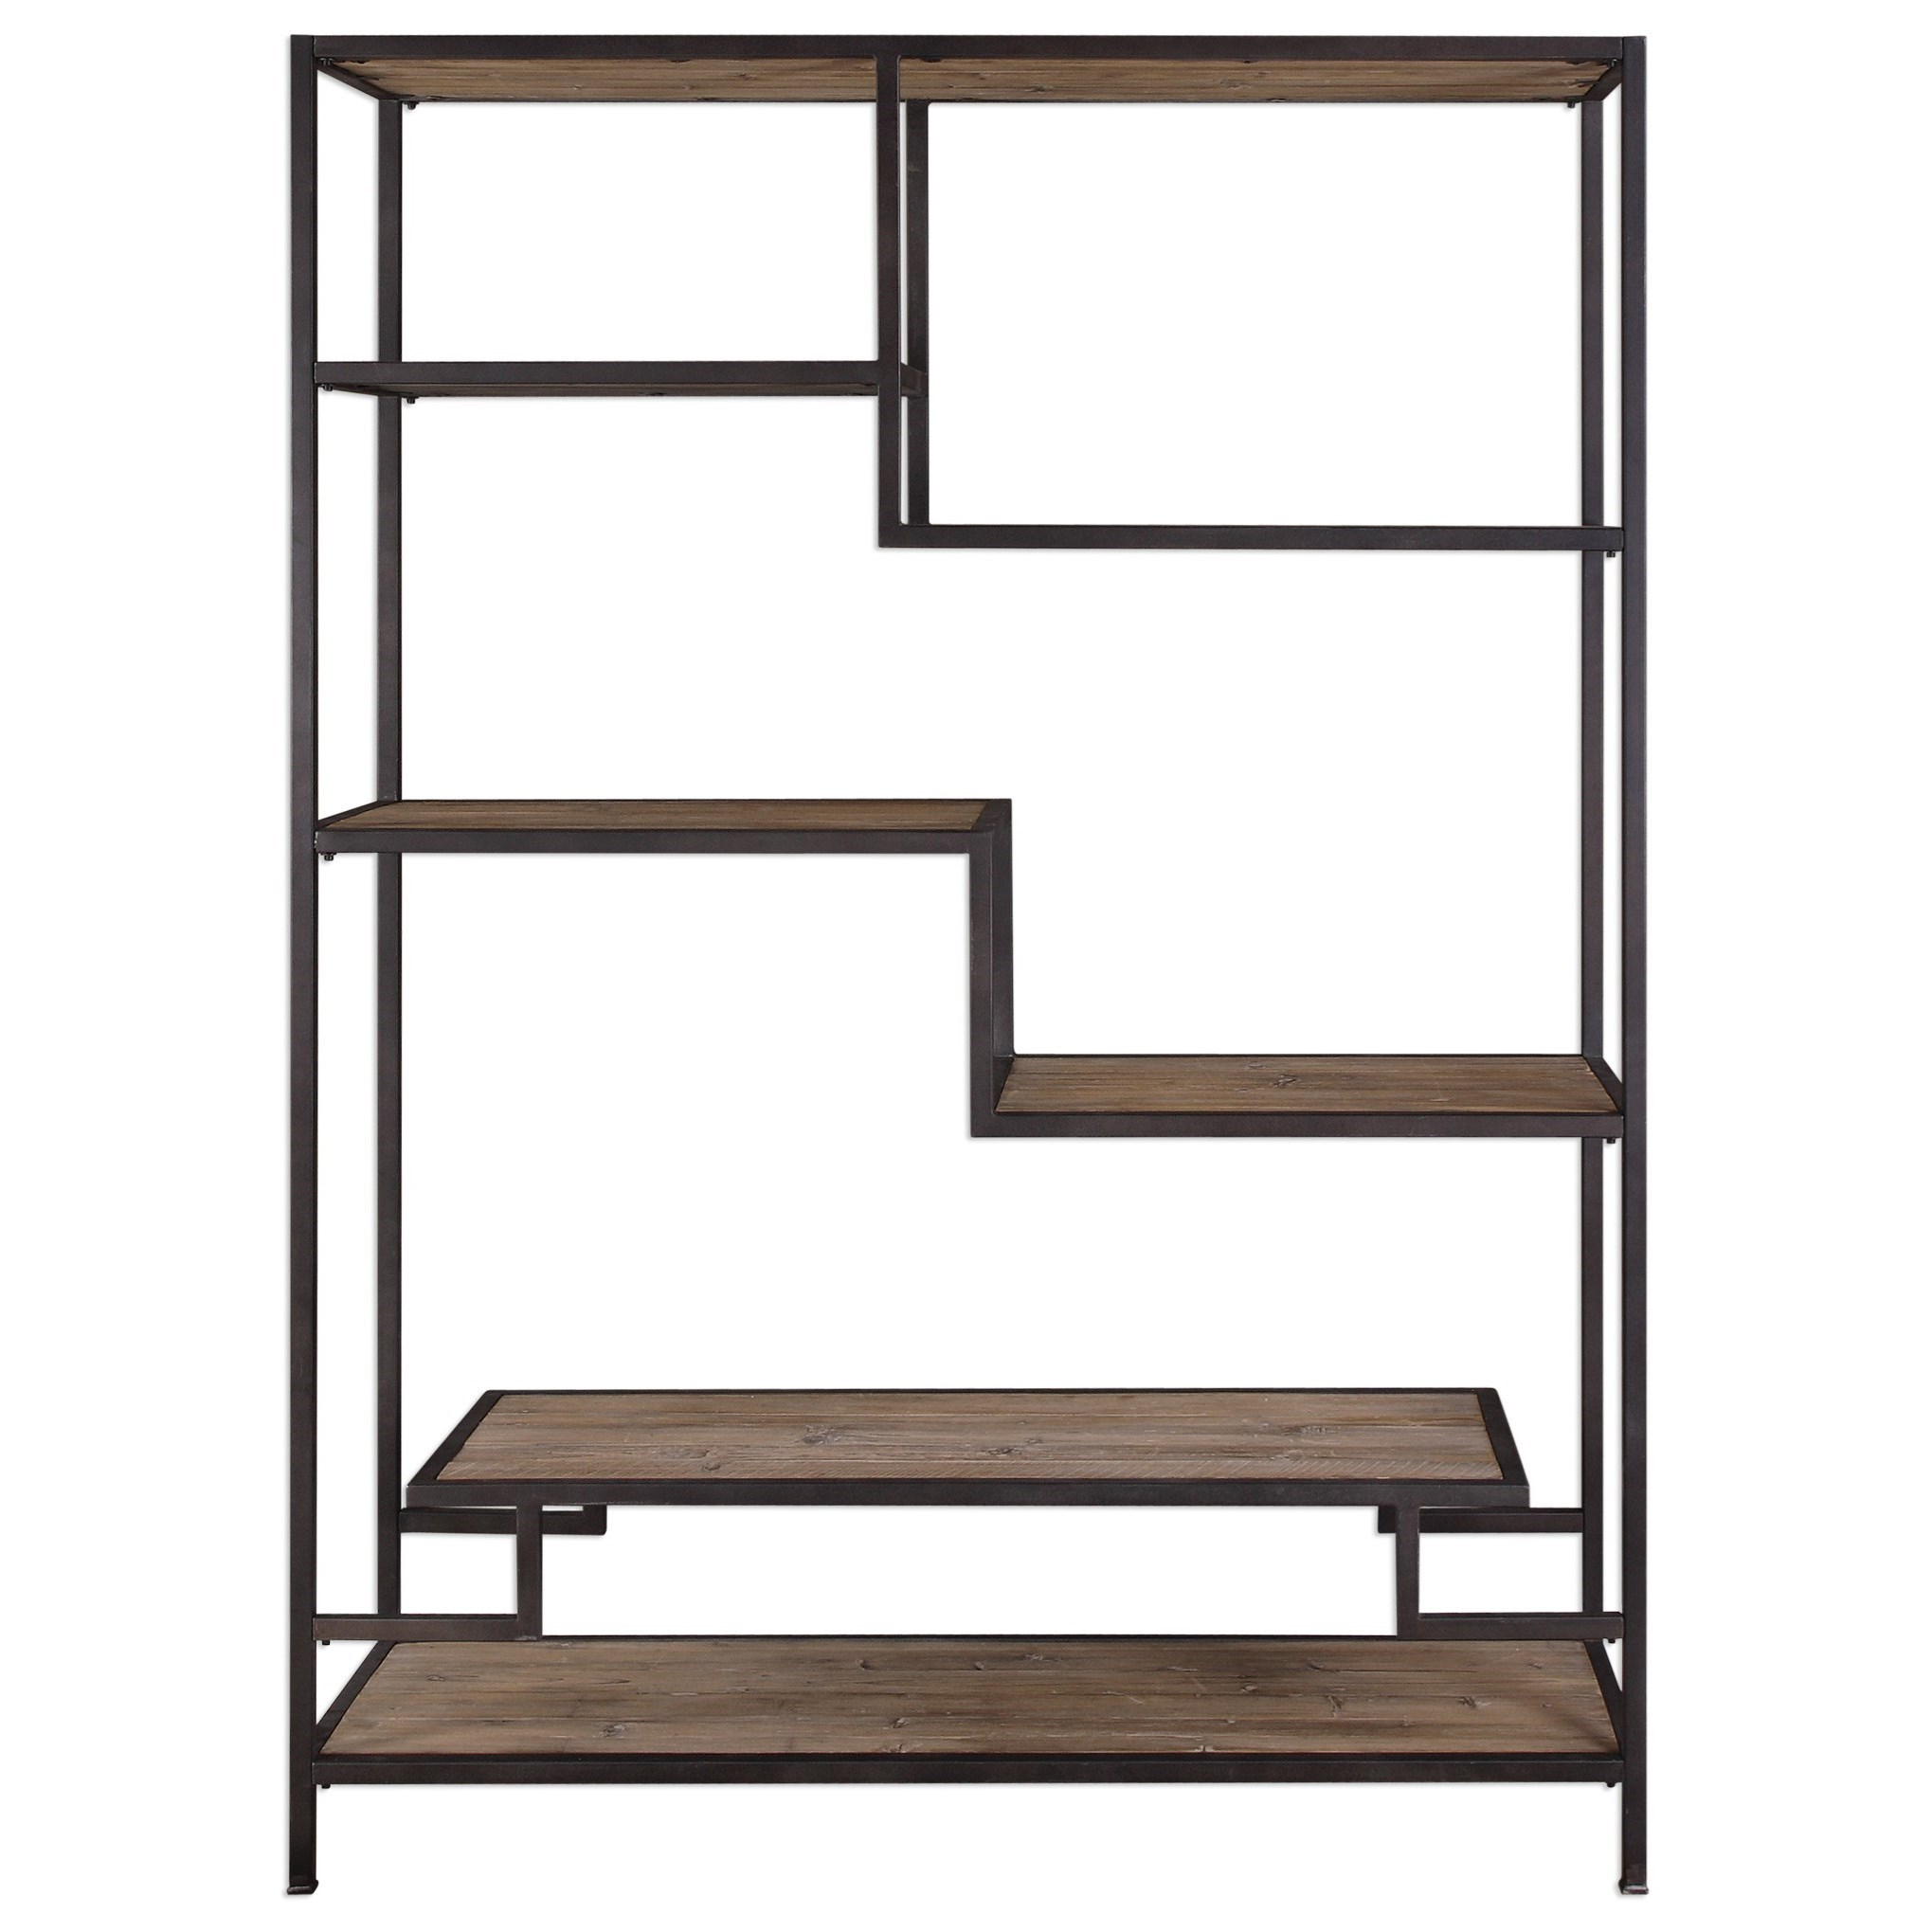 Accent Furniture - Bookcases  Sherwin Industrial Etagere by Uttermost at Reid's Furniture